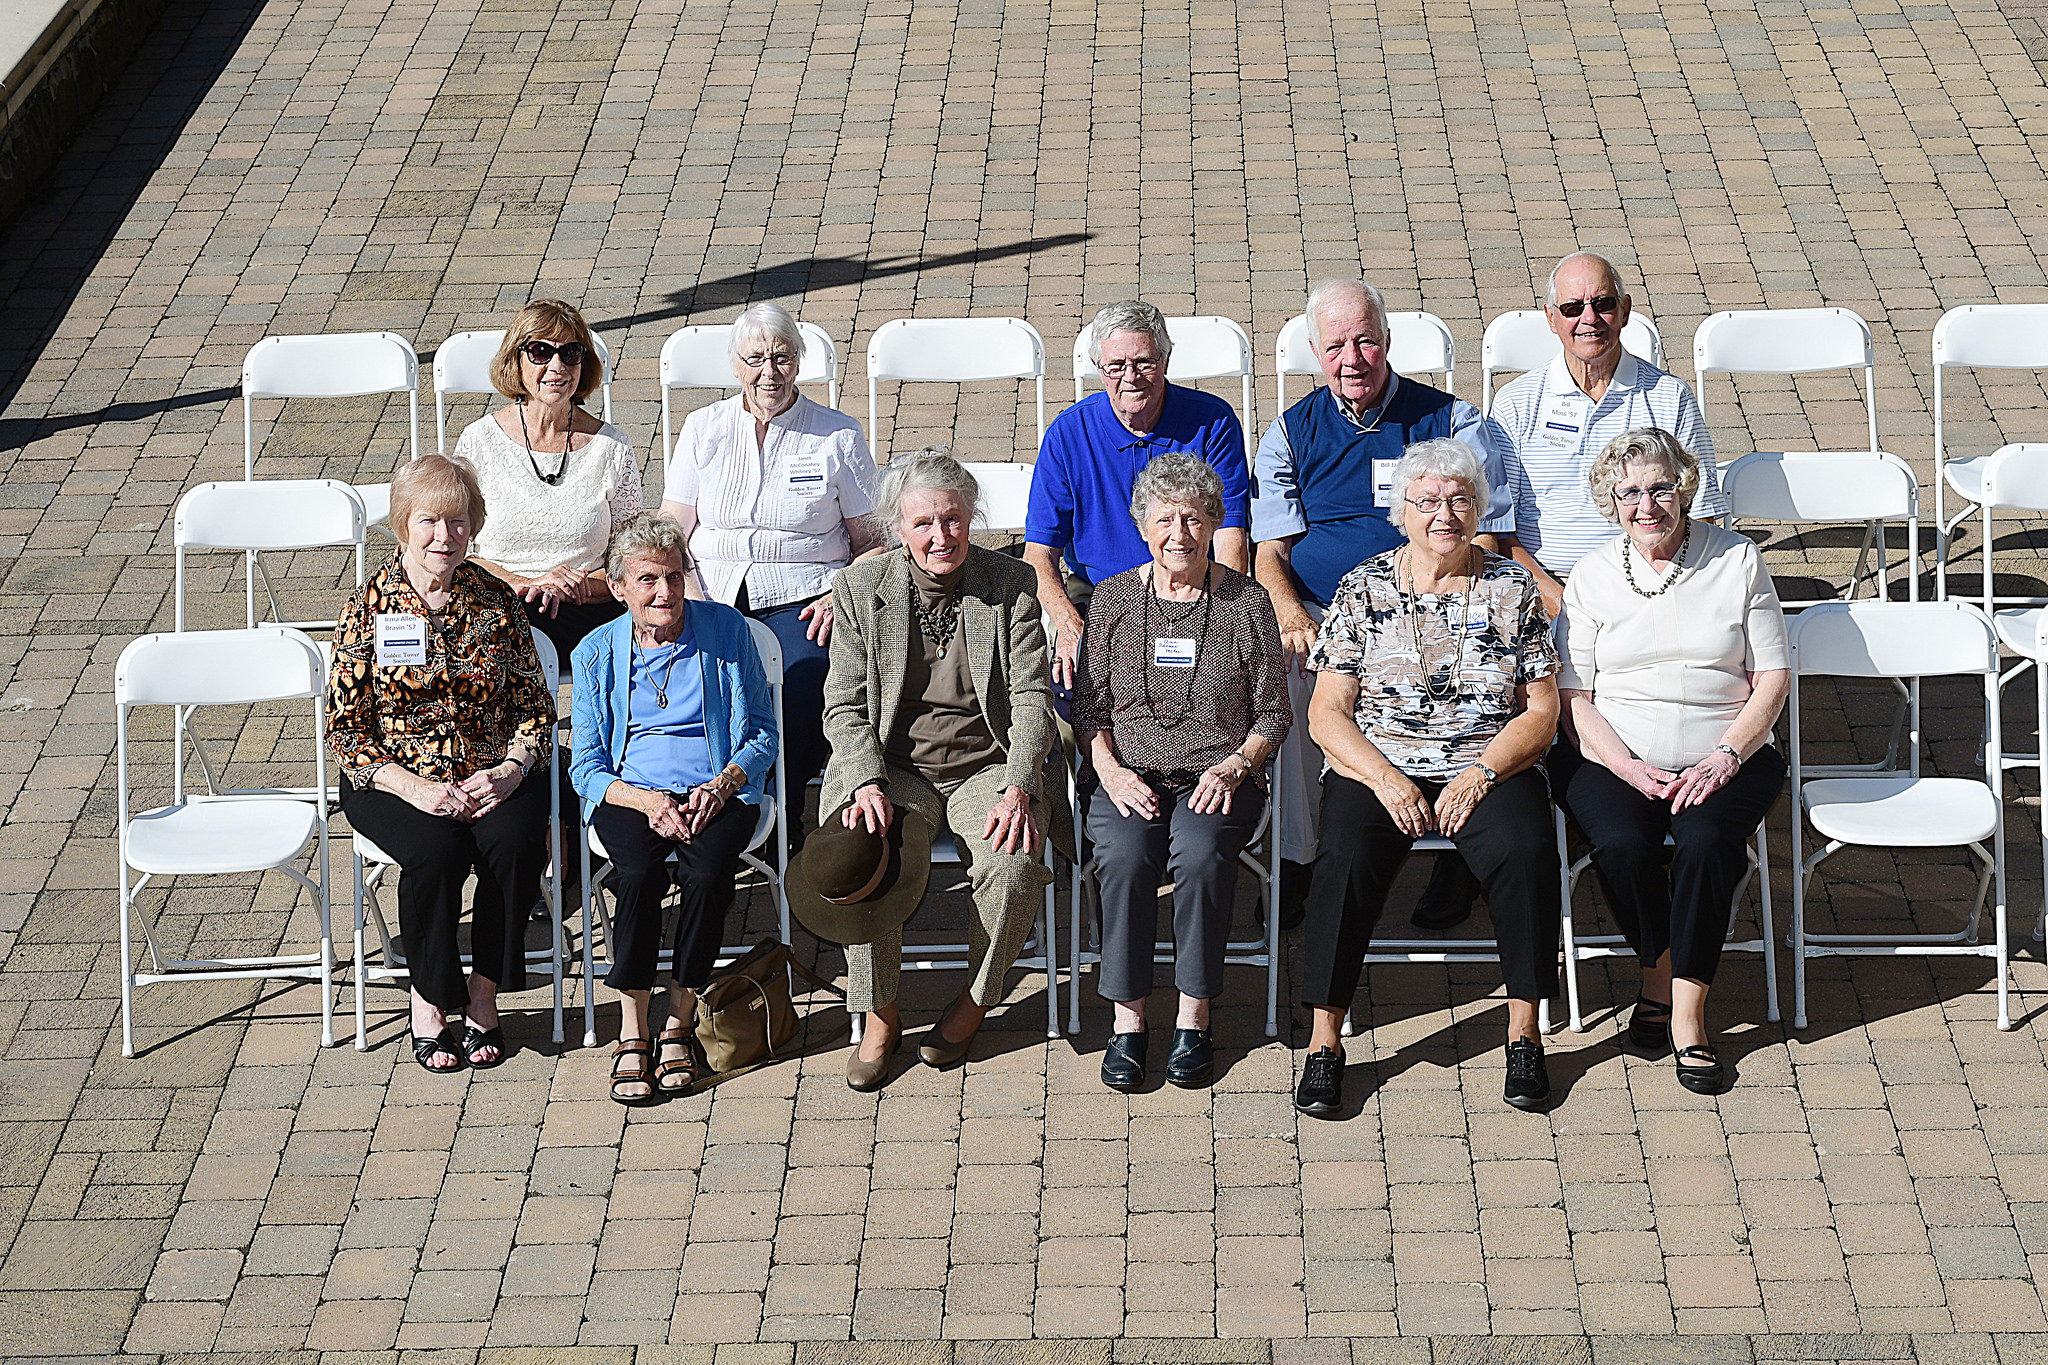 Reunion Photo for the Class of 1962